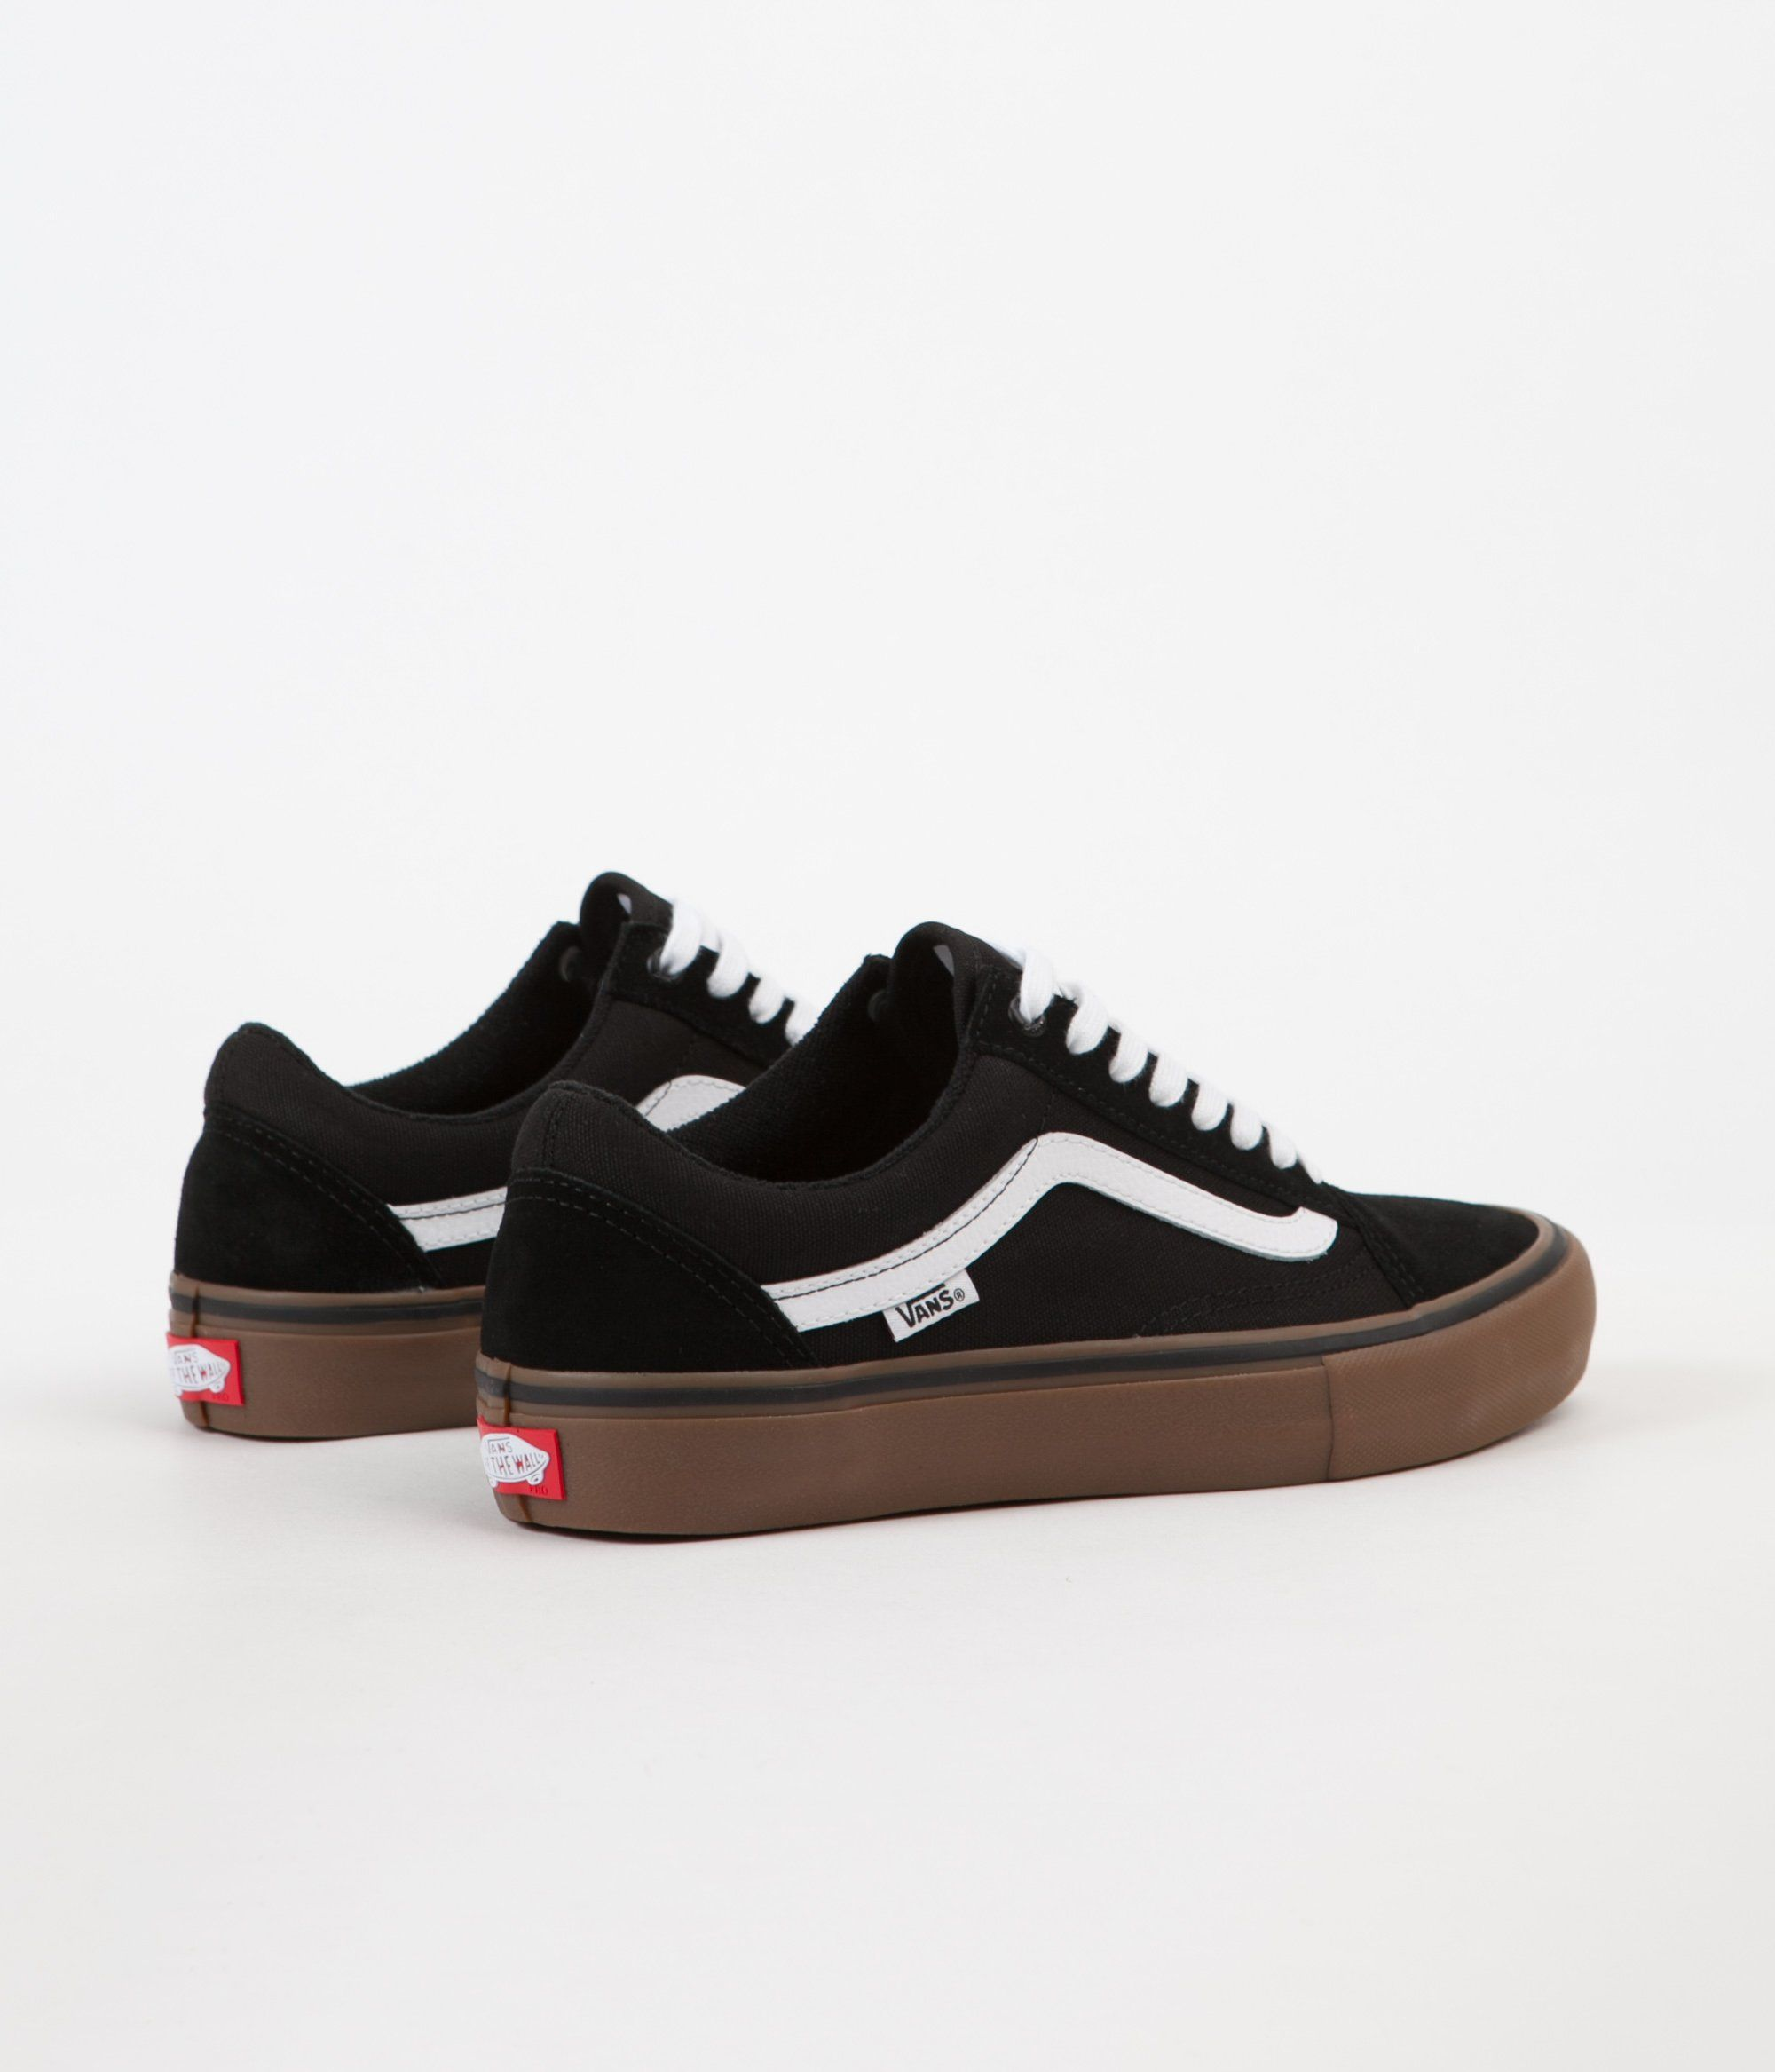 974ed9e92fa Vans Old Skool Pro Shoes - Black   White   Medium Gum in 2019 ...